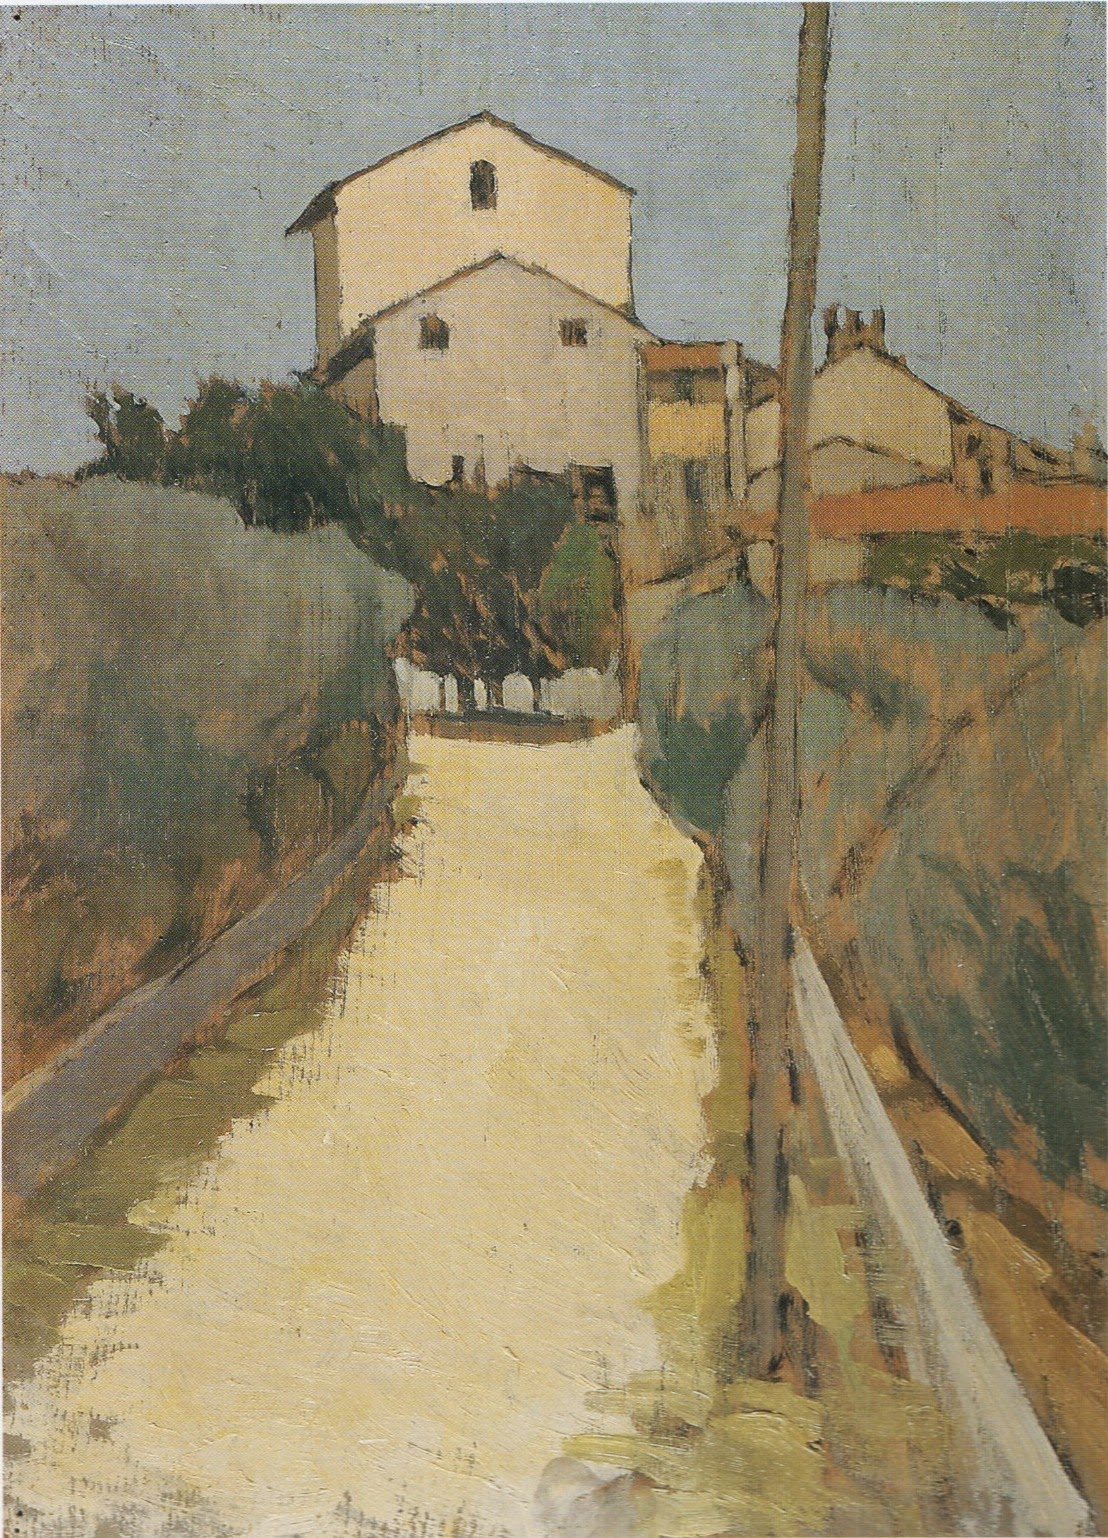 Oscar Ghiglia, View of Villa d'Ancona a Volognano, oil on panel, 39 x 28.5 inche